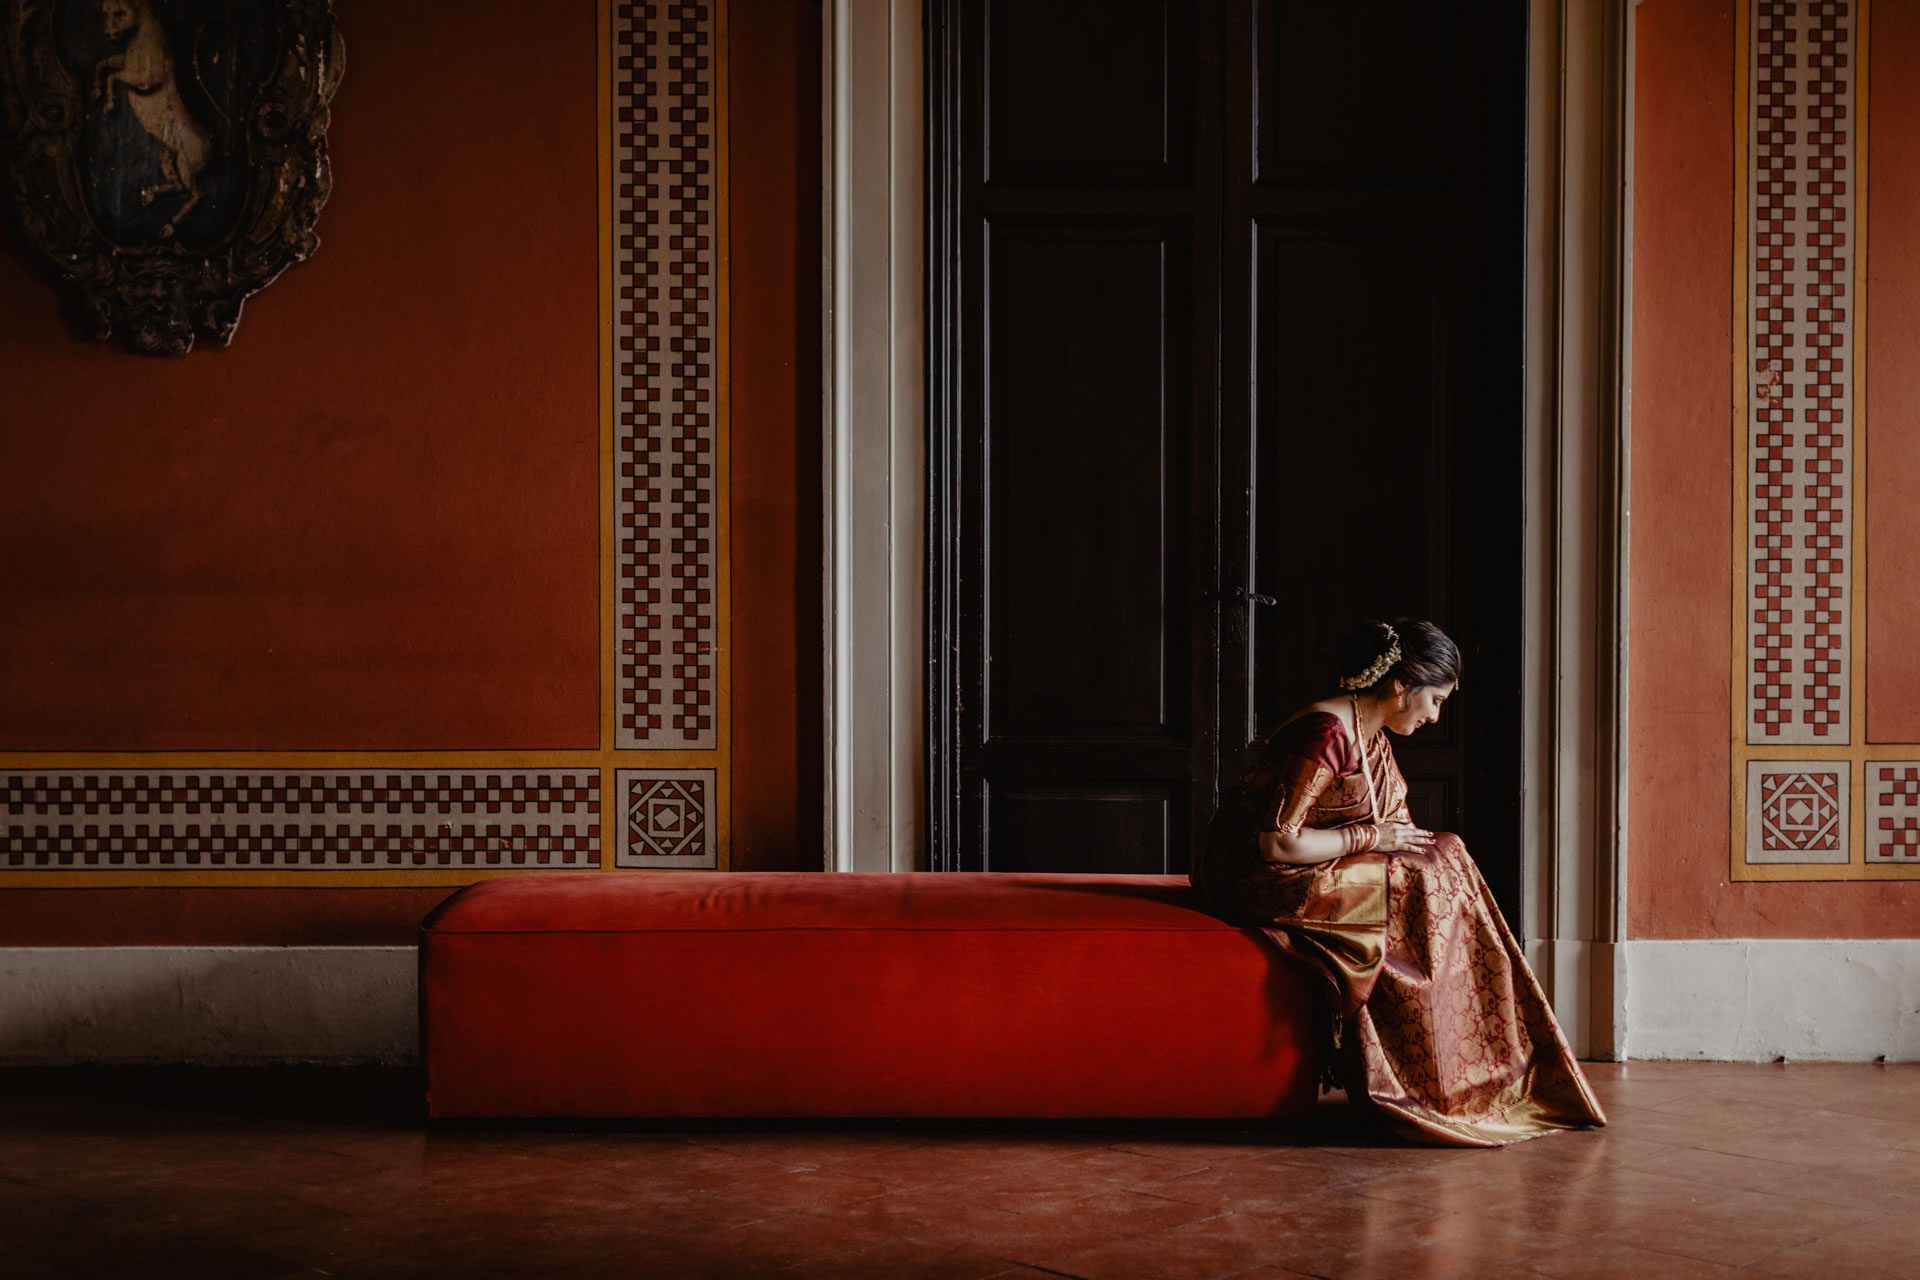 - 28 :: Indian wedding ceremony at Villa Pitiana :: Luxury wedding photography - 27 ::  - 28